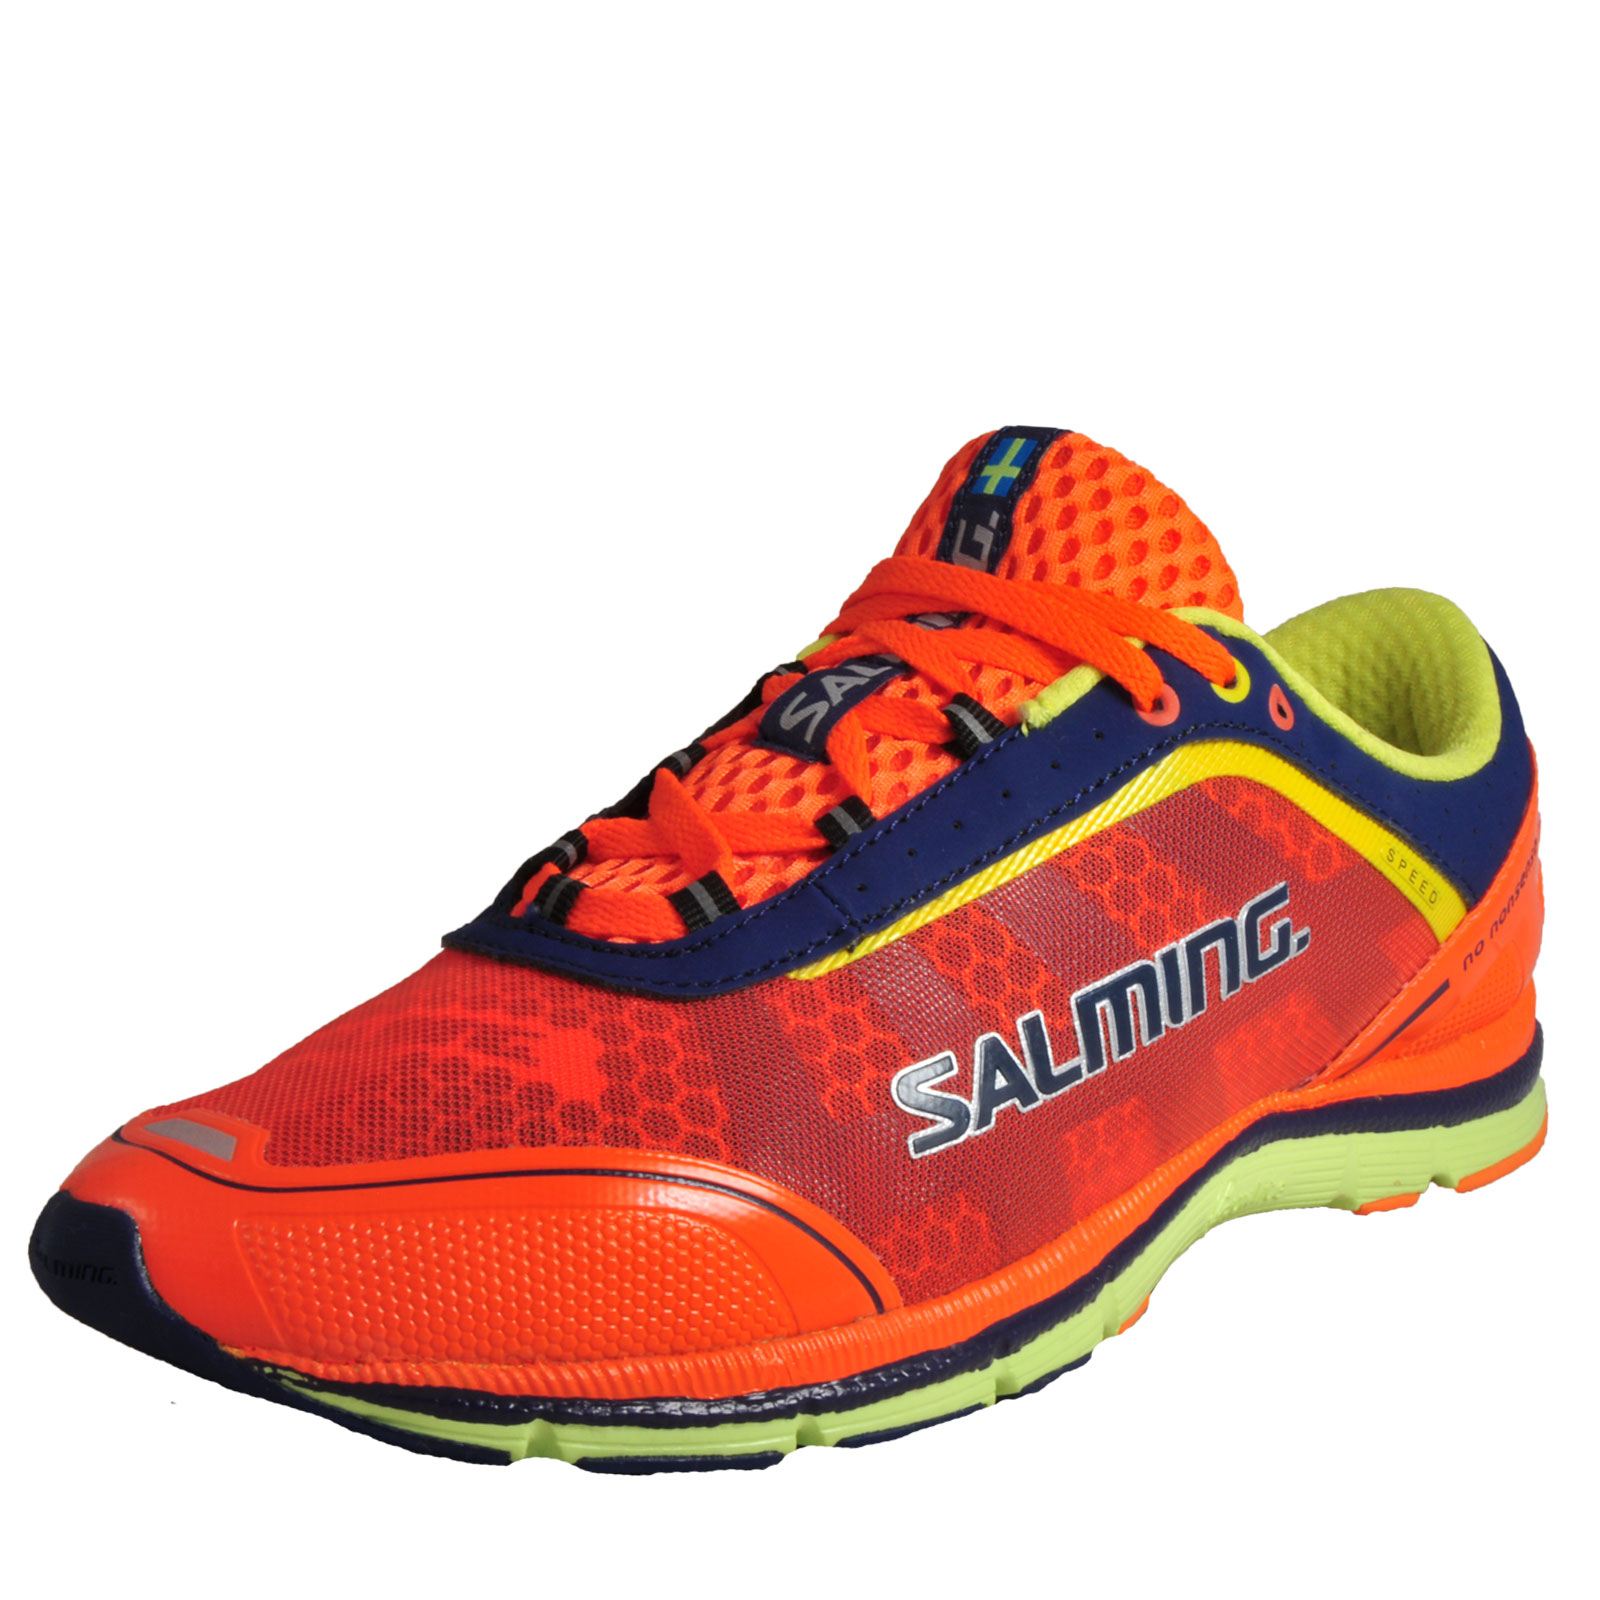 PUMA Ignite Ultimate 3D 000600238676251 Authorized Discount Retailer Largest Fashion Store